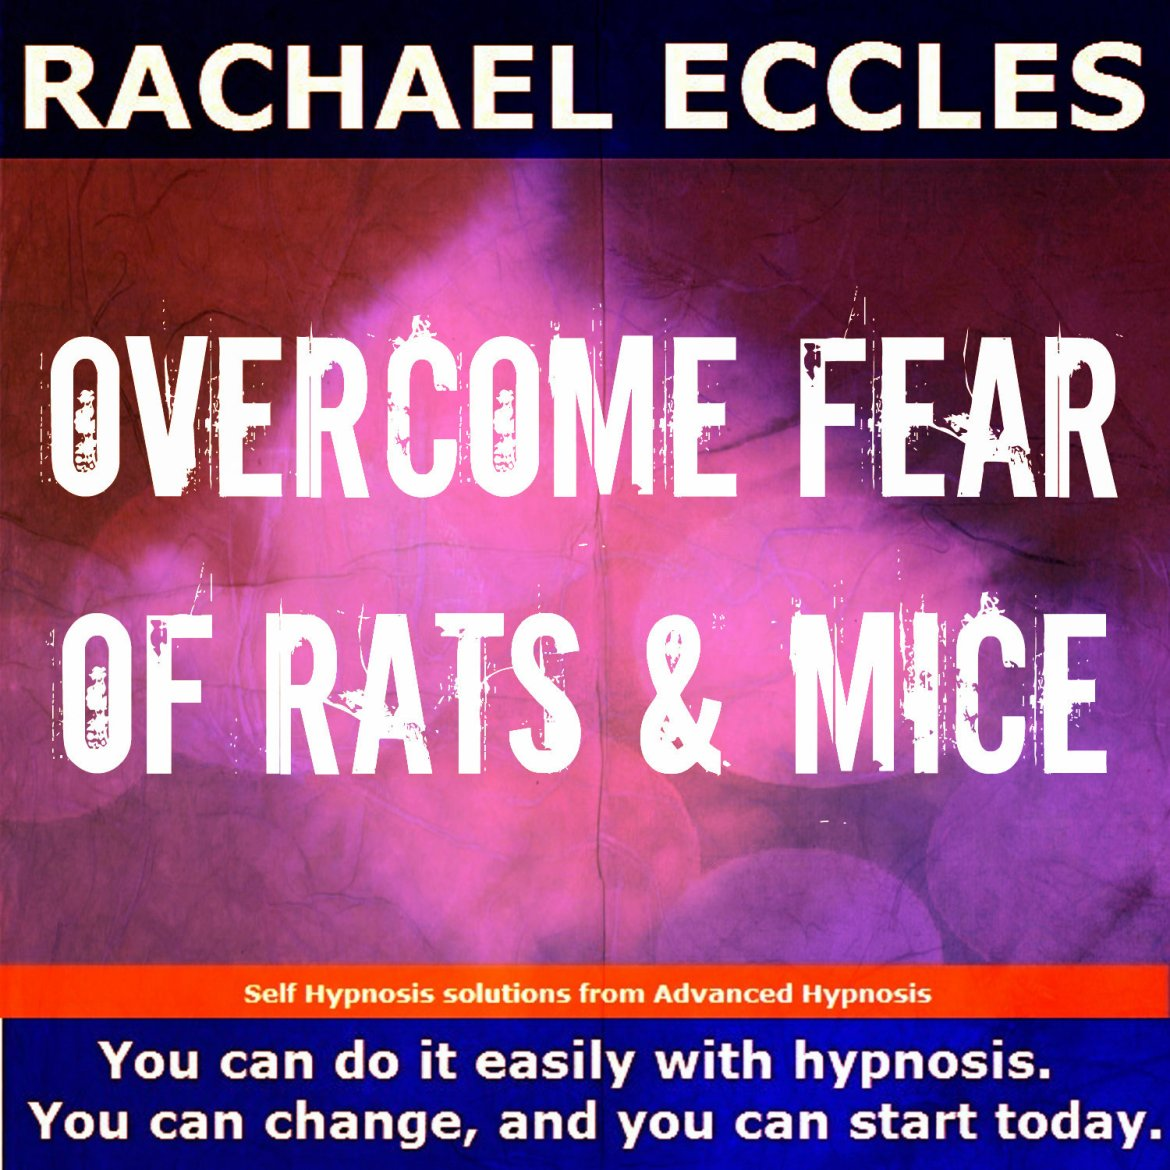 Overcome Fear of Rats & Mice Hypnosis Hypnotherapy Instant download MP3 Audio 20036